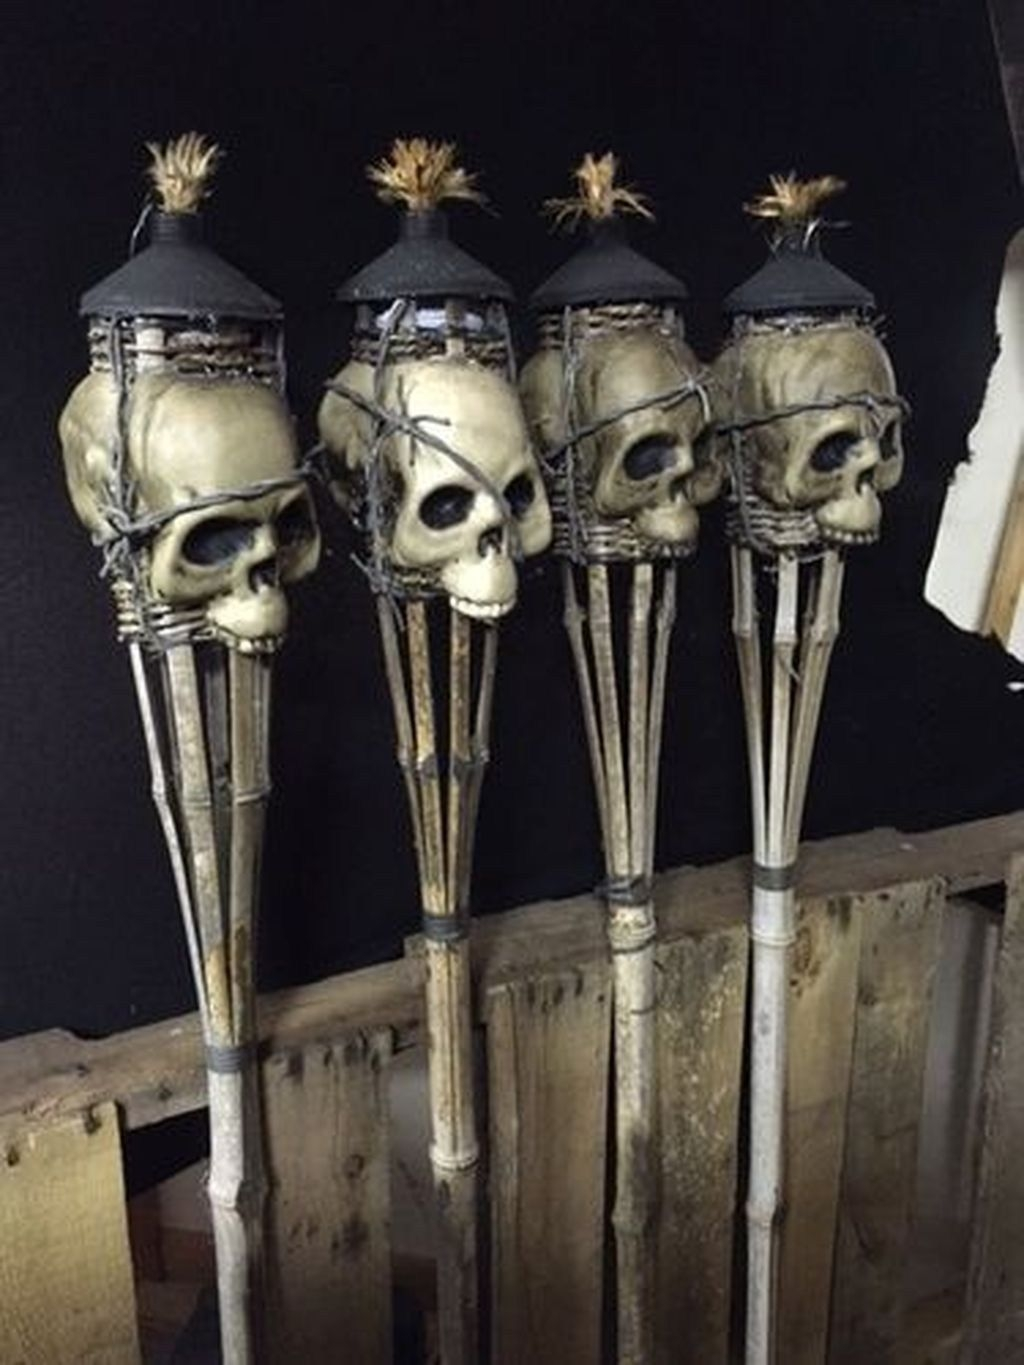 Casual Halloween Decorations Ideas That Are So Scary24